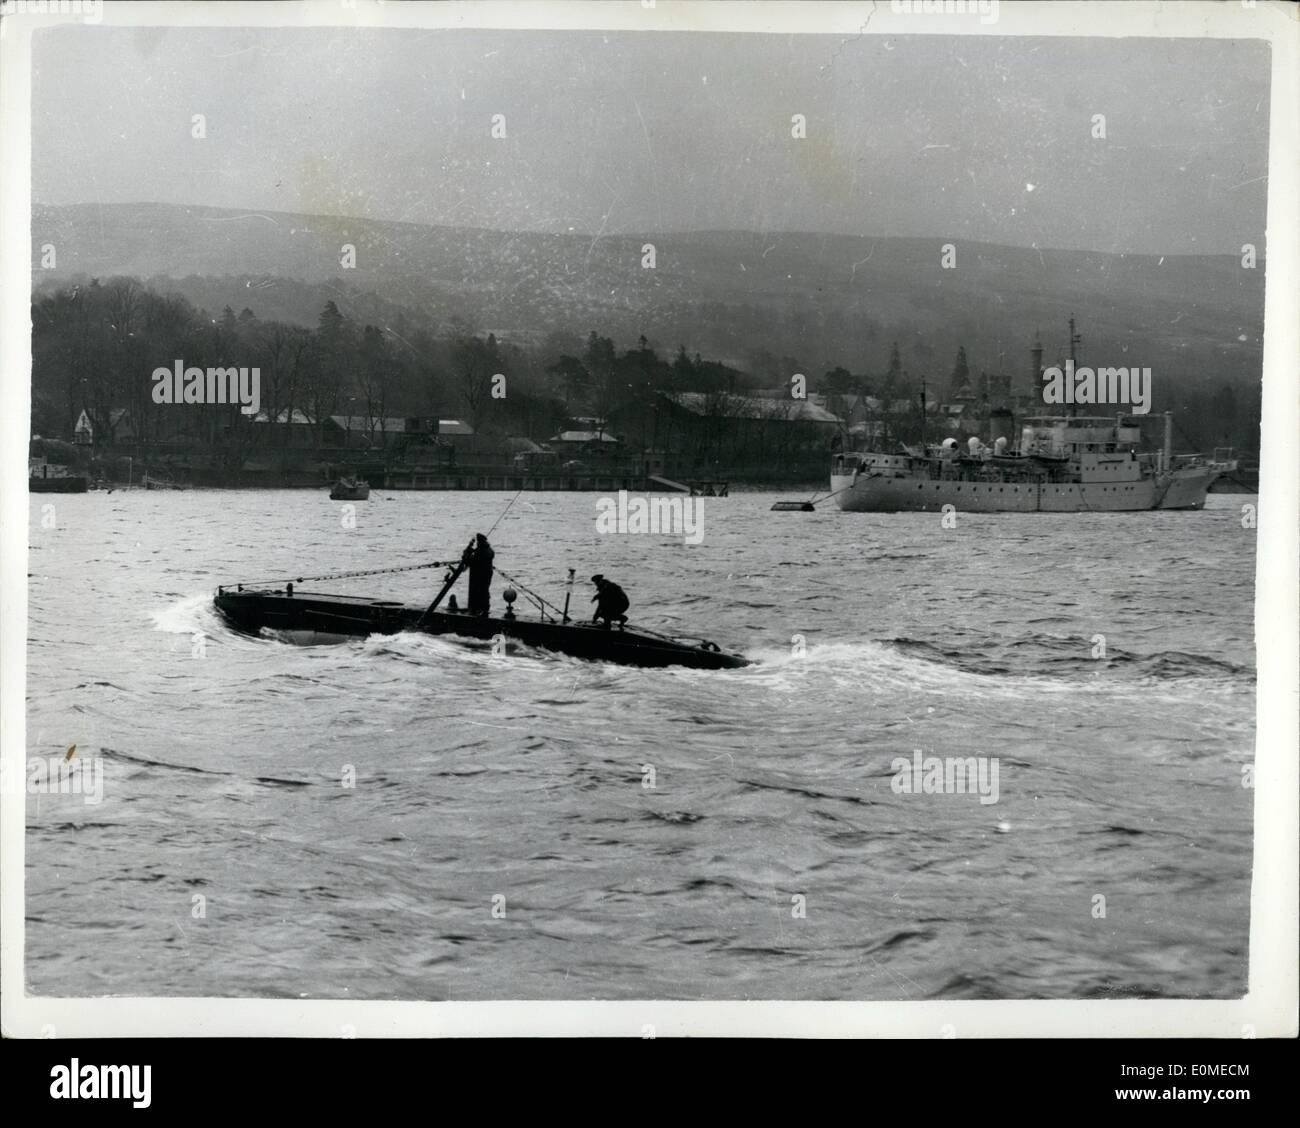 Nov. 11, 1954 - The Navy's new ''Baby'' midget sub under trial in Scottish Waters. Photo shows the newest 'baby' of the Royal Navy a new five man midget submarine known as X-51 and which is 54 ft. long seen during her trials in the choppy waters of Scotland's Gareloch. The Submarine will soon be ready for service but much of her equipment performance etc. is still secret. - Stock Image